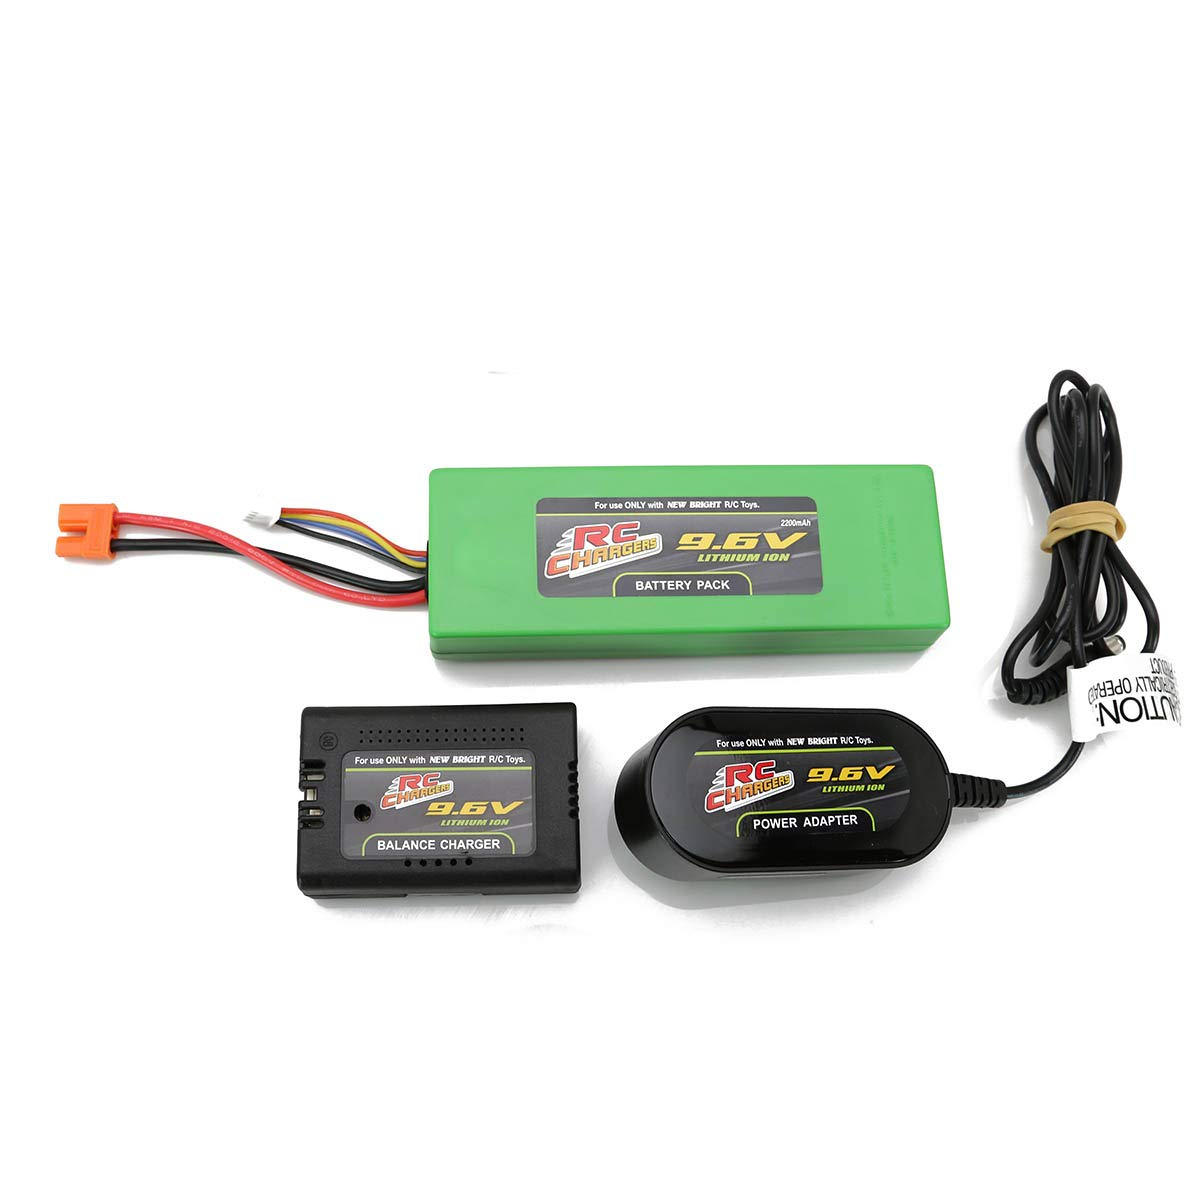 Official 9.6 Volt 2200 mAH Lithium Ion RC Chargers Rechargeable Battery Pack and Charger Included   Fits RC Pro Brushless Beast   Also Works with New Bright Frenzy, Model #81060